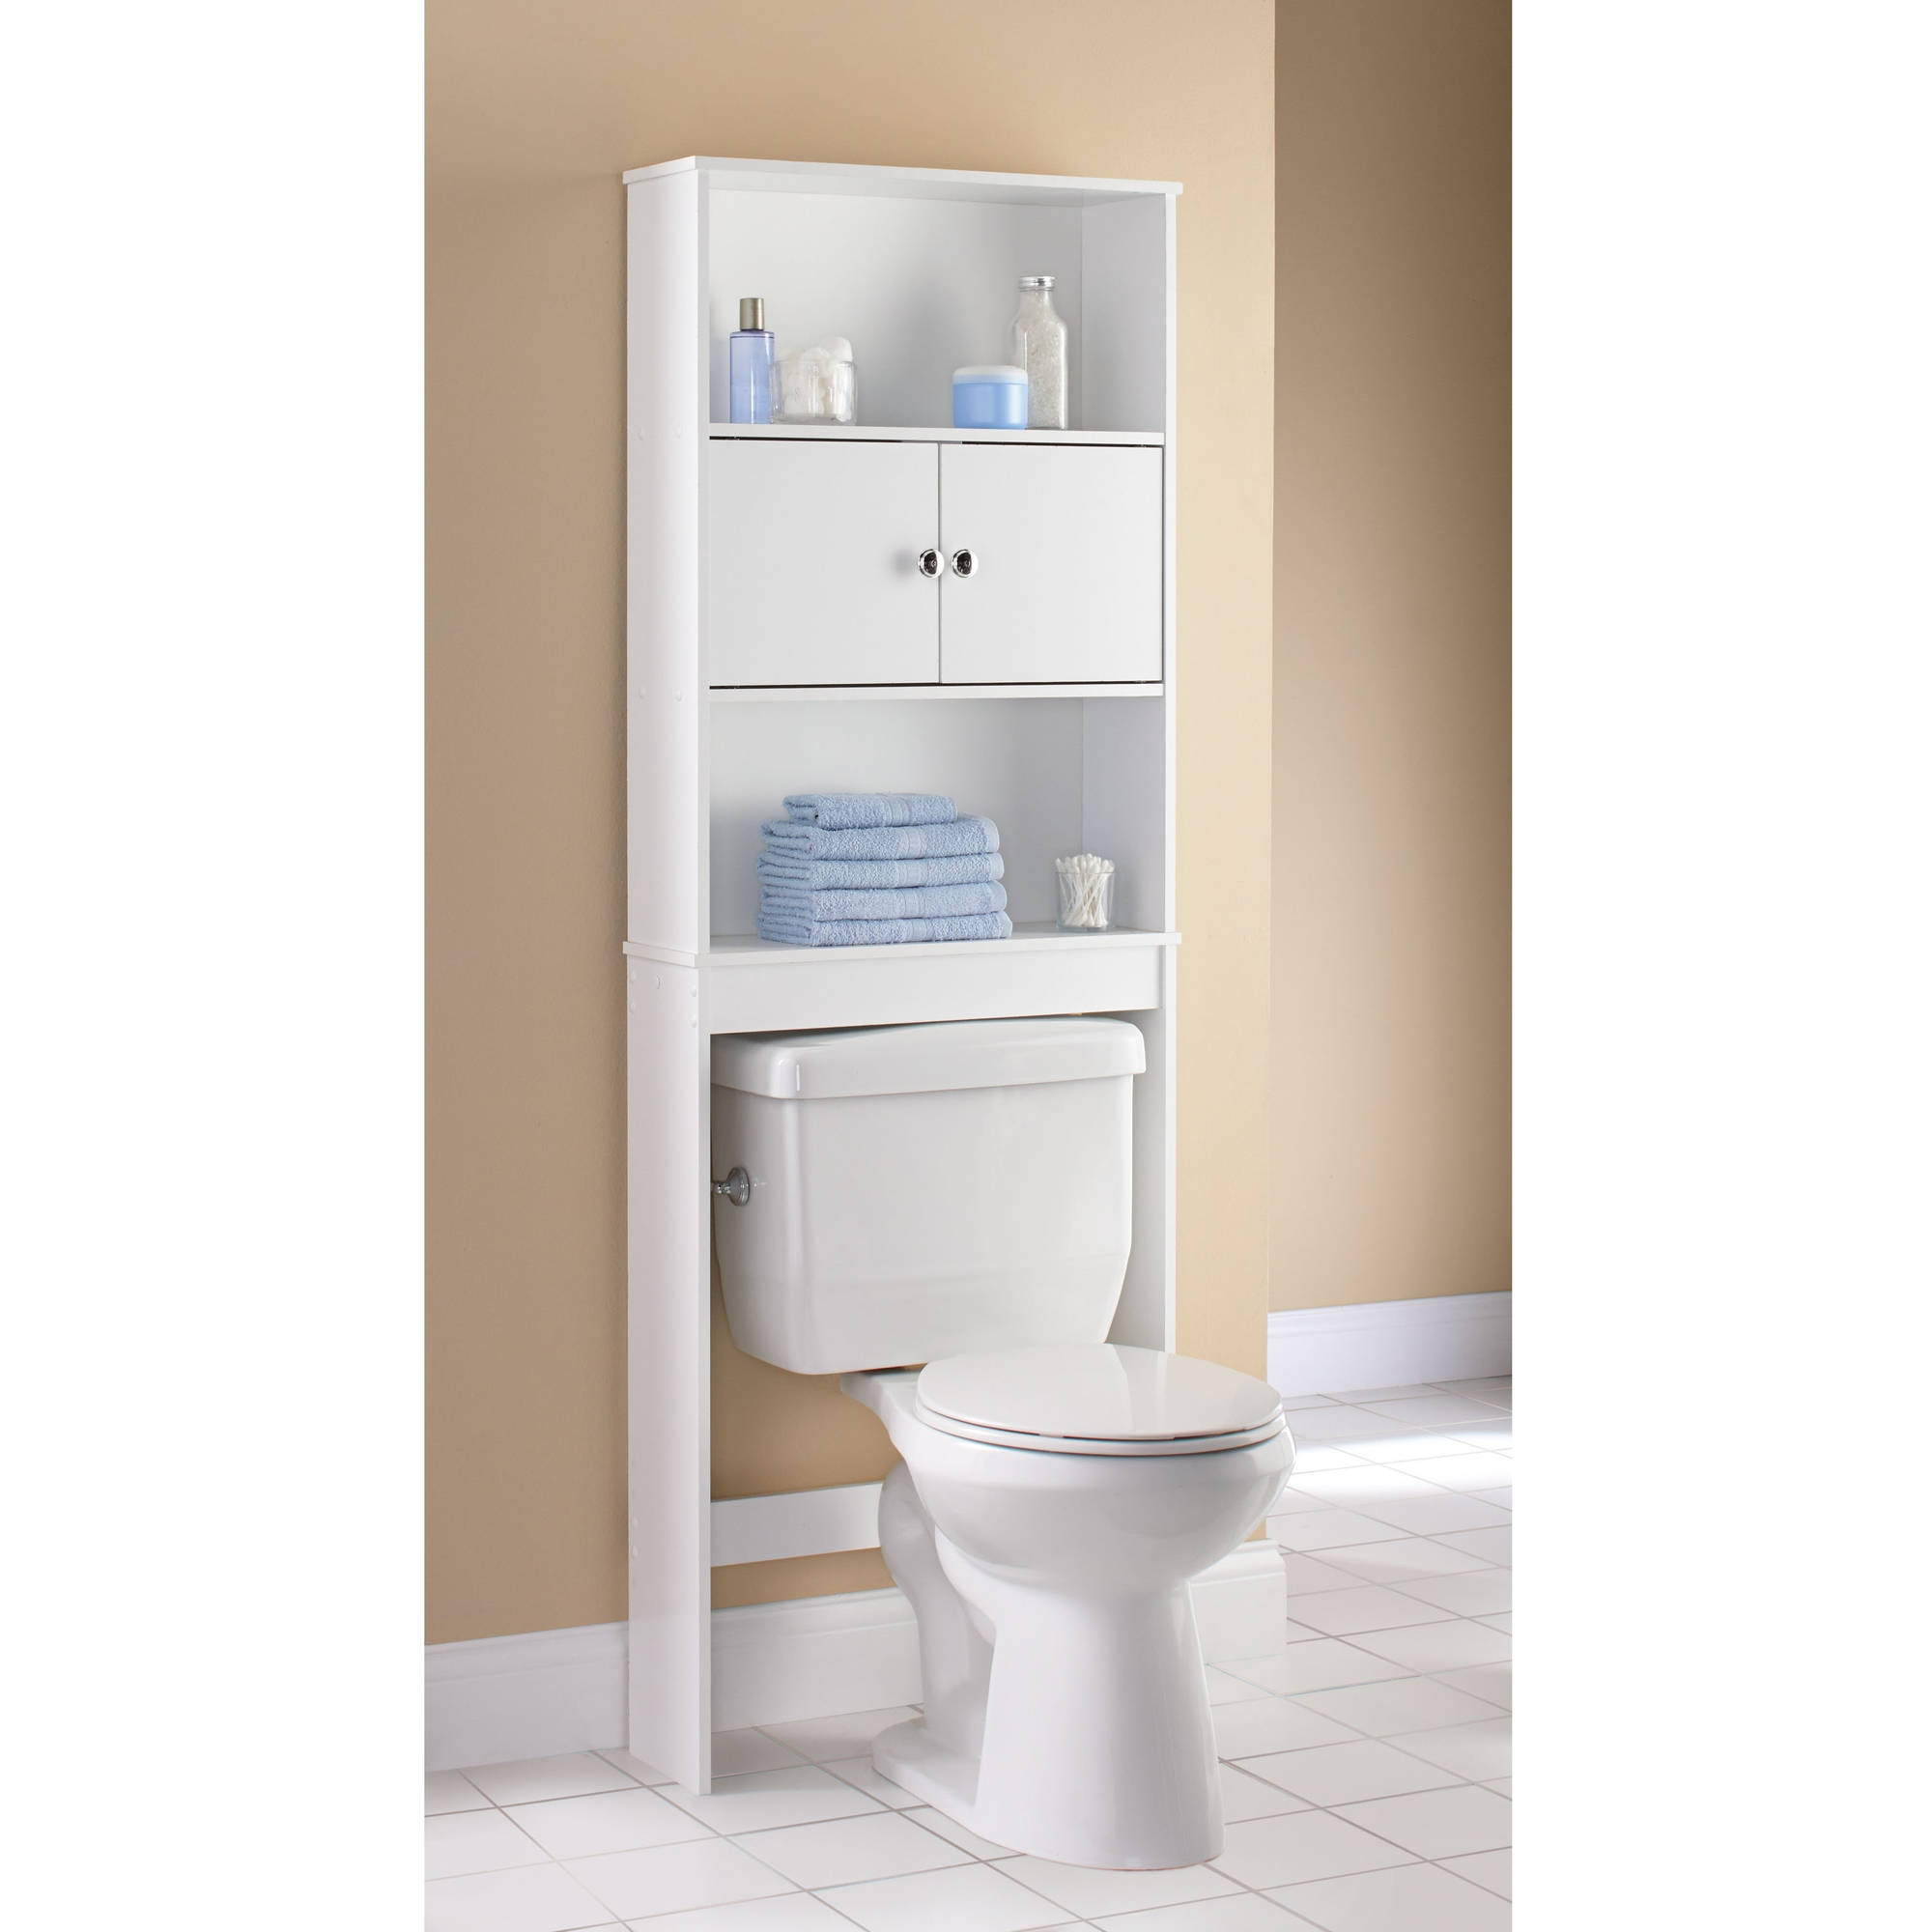 Permalink to Space Saver Bathroom Cabinet White